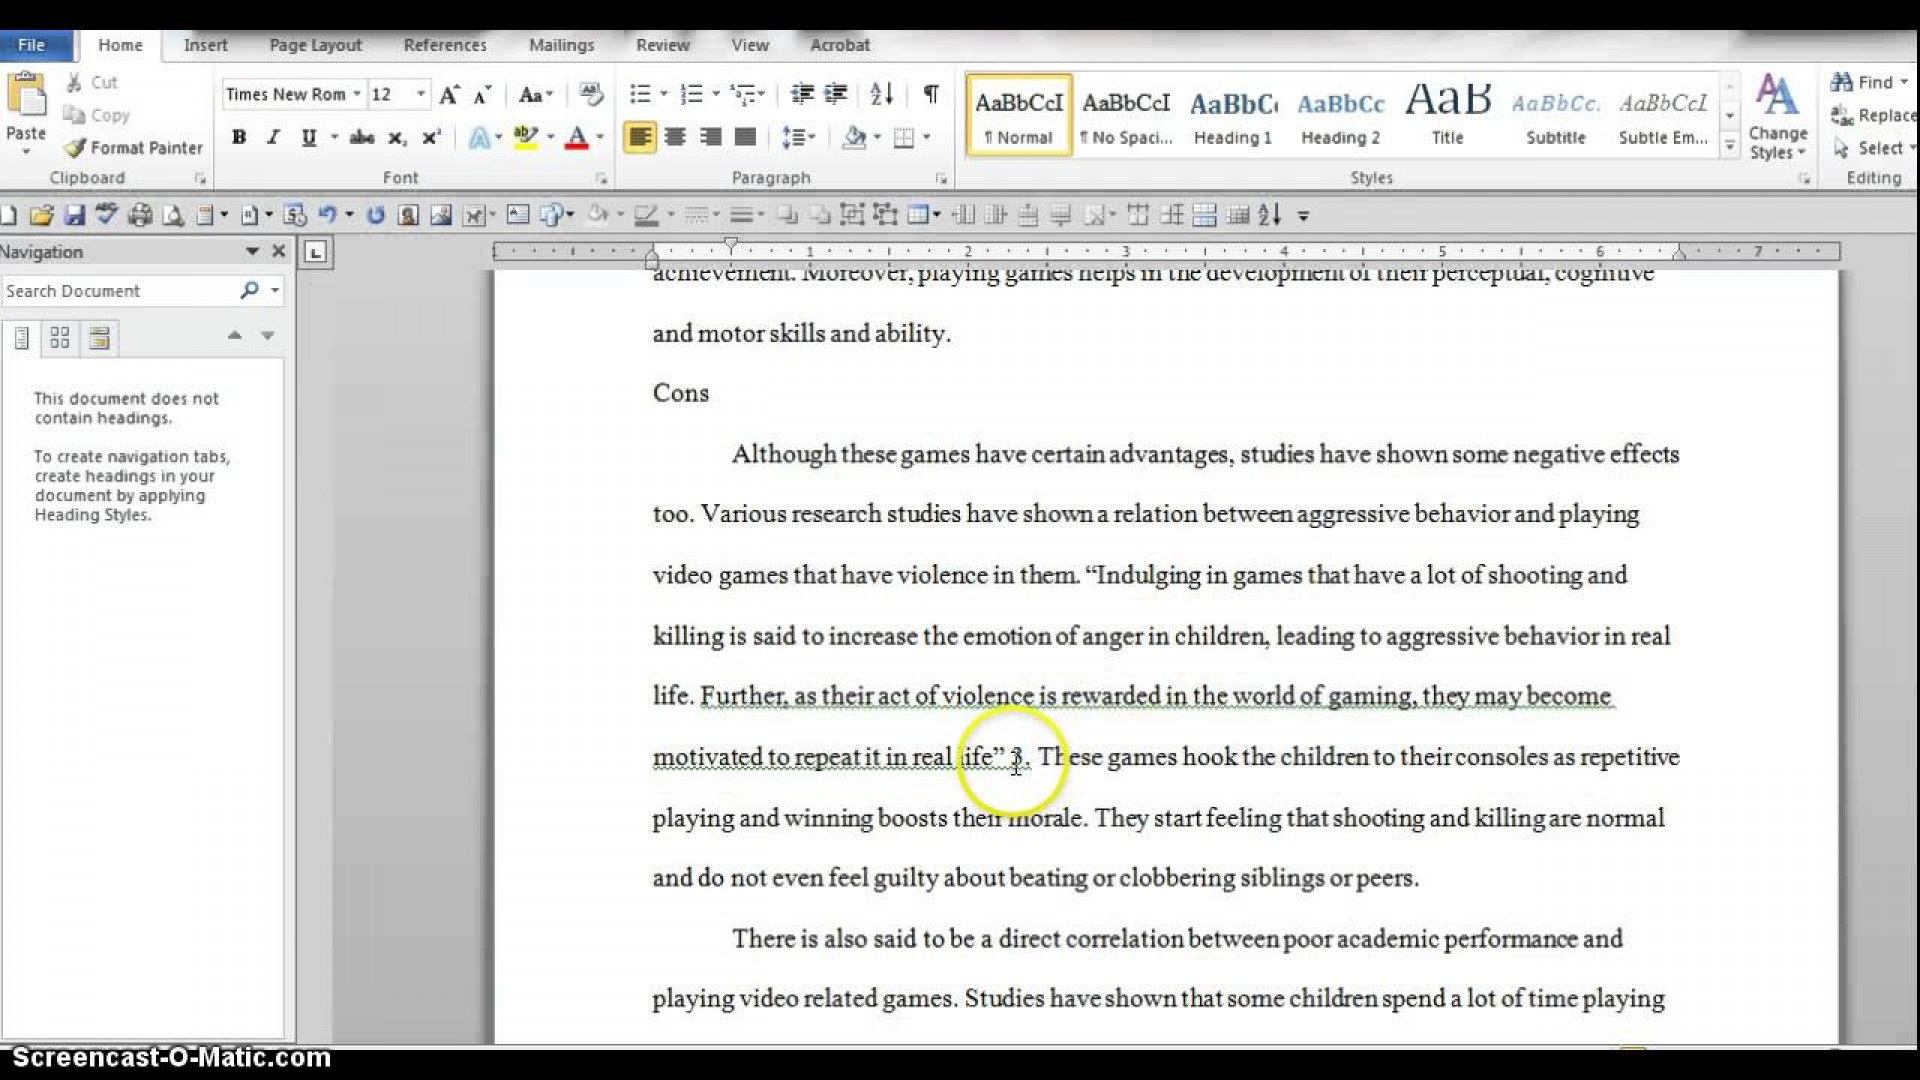 018 How To Cite Website In Essay Maxresdefault Stupendous A Paper With No Author Or Date Citation Text Apa 1920